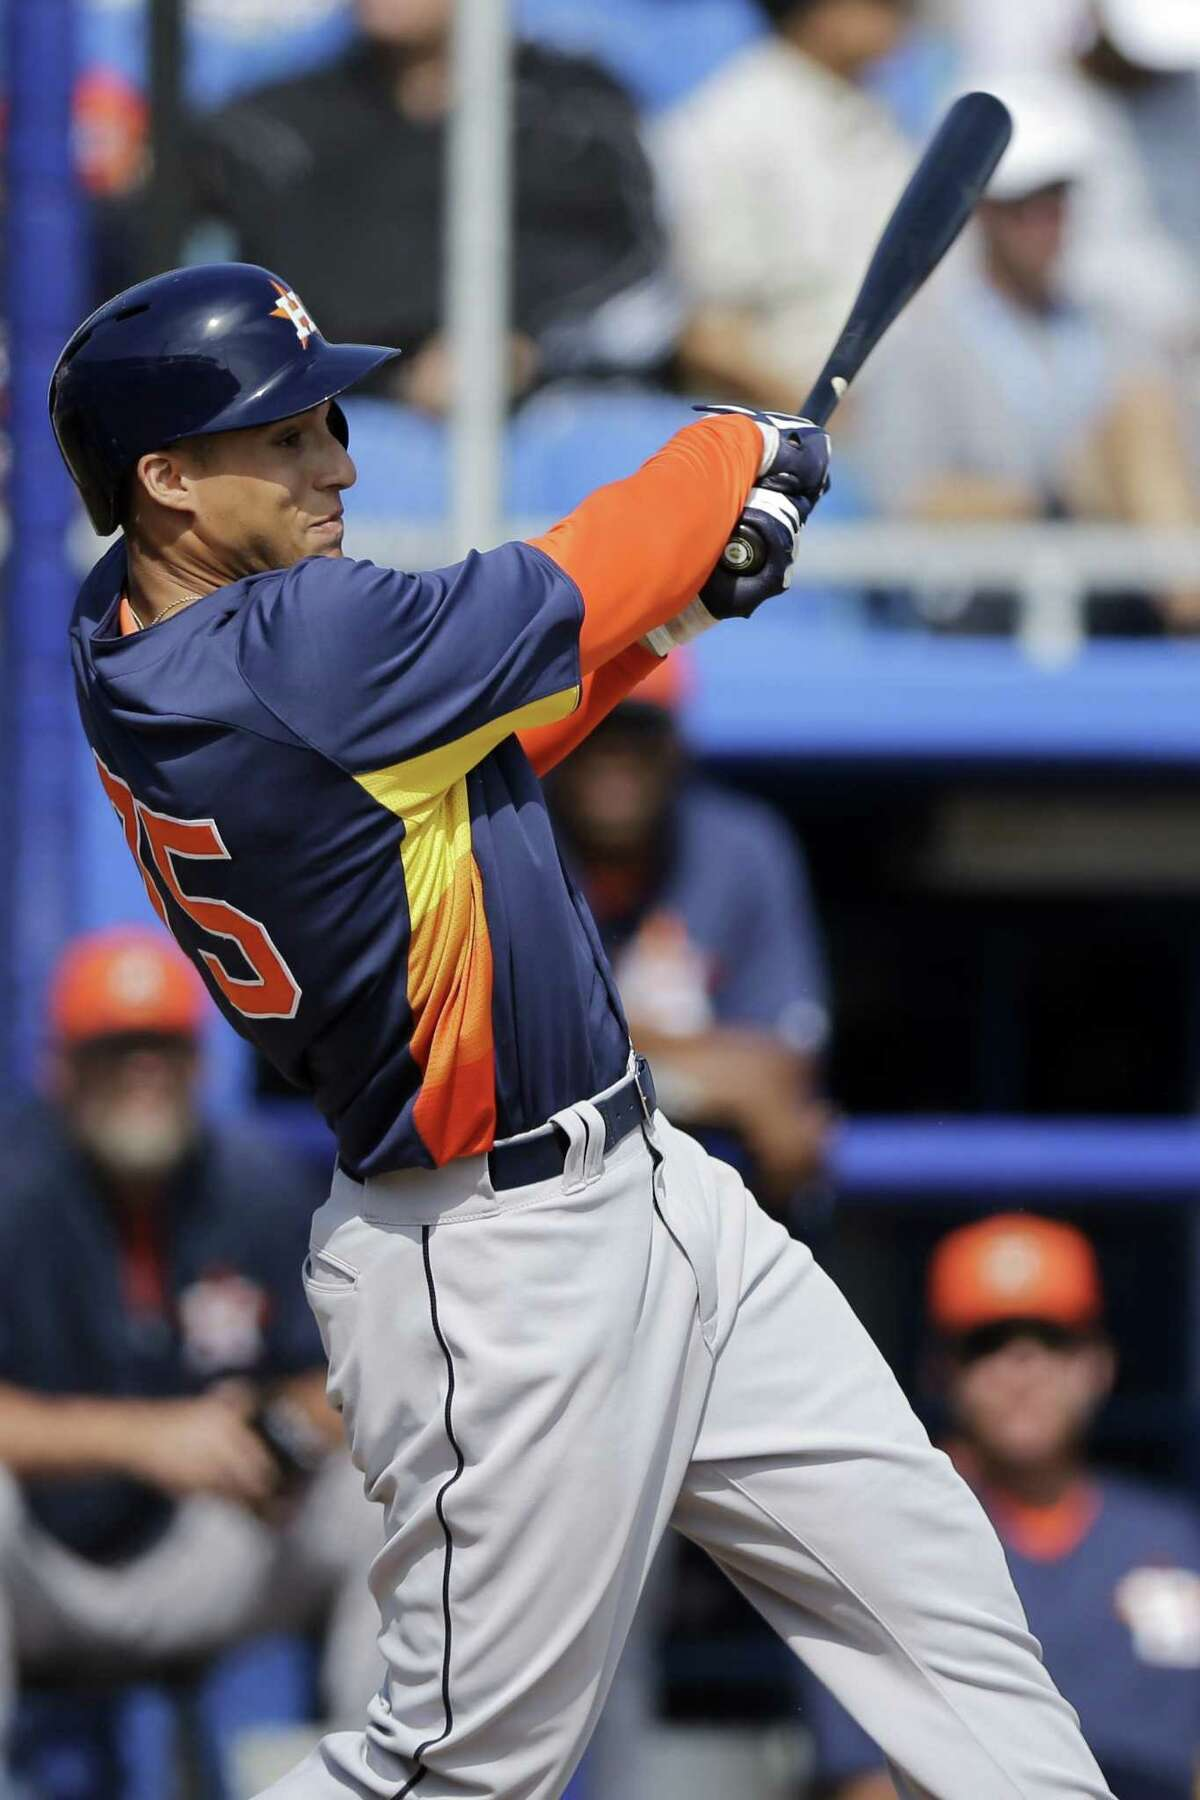 New Britain native and UConn product George Springer has shown the five-tool stuff this season. (AP File Photo/Matt Slocum)